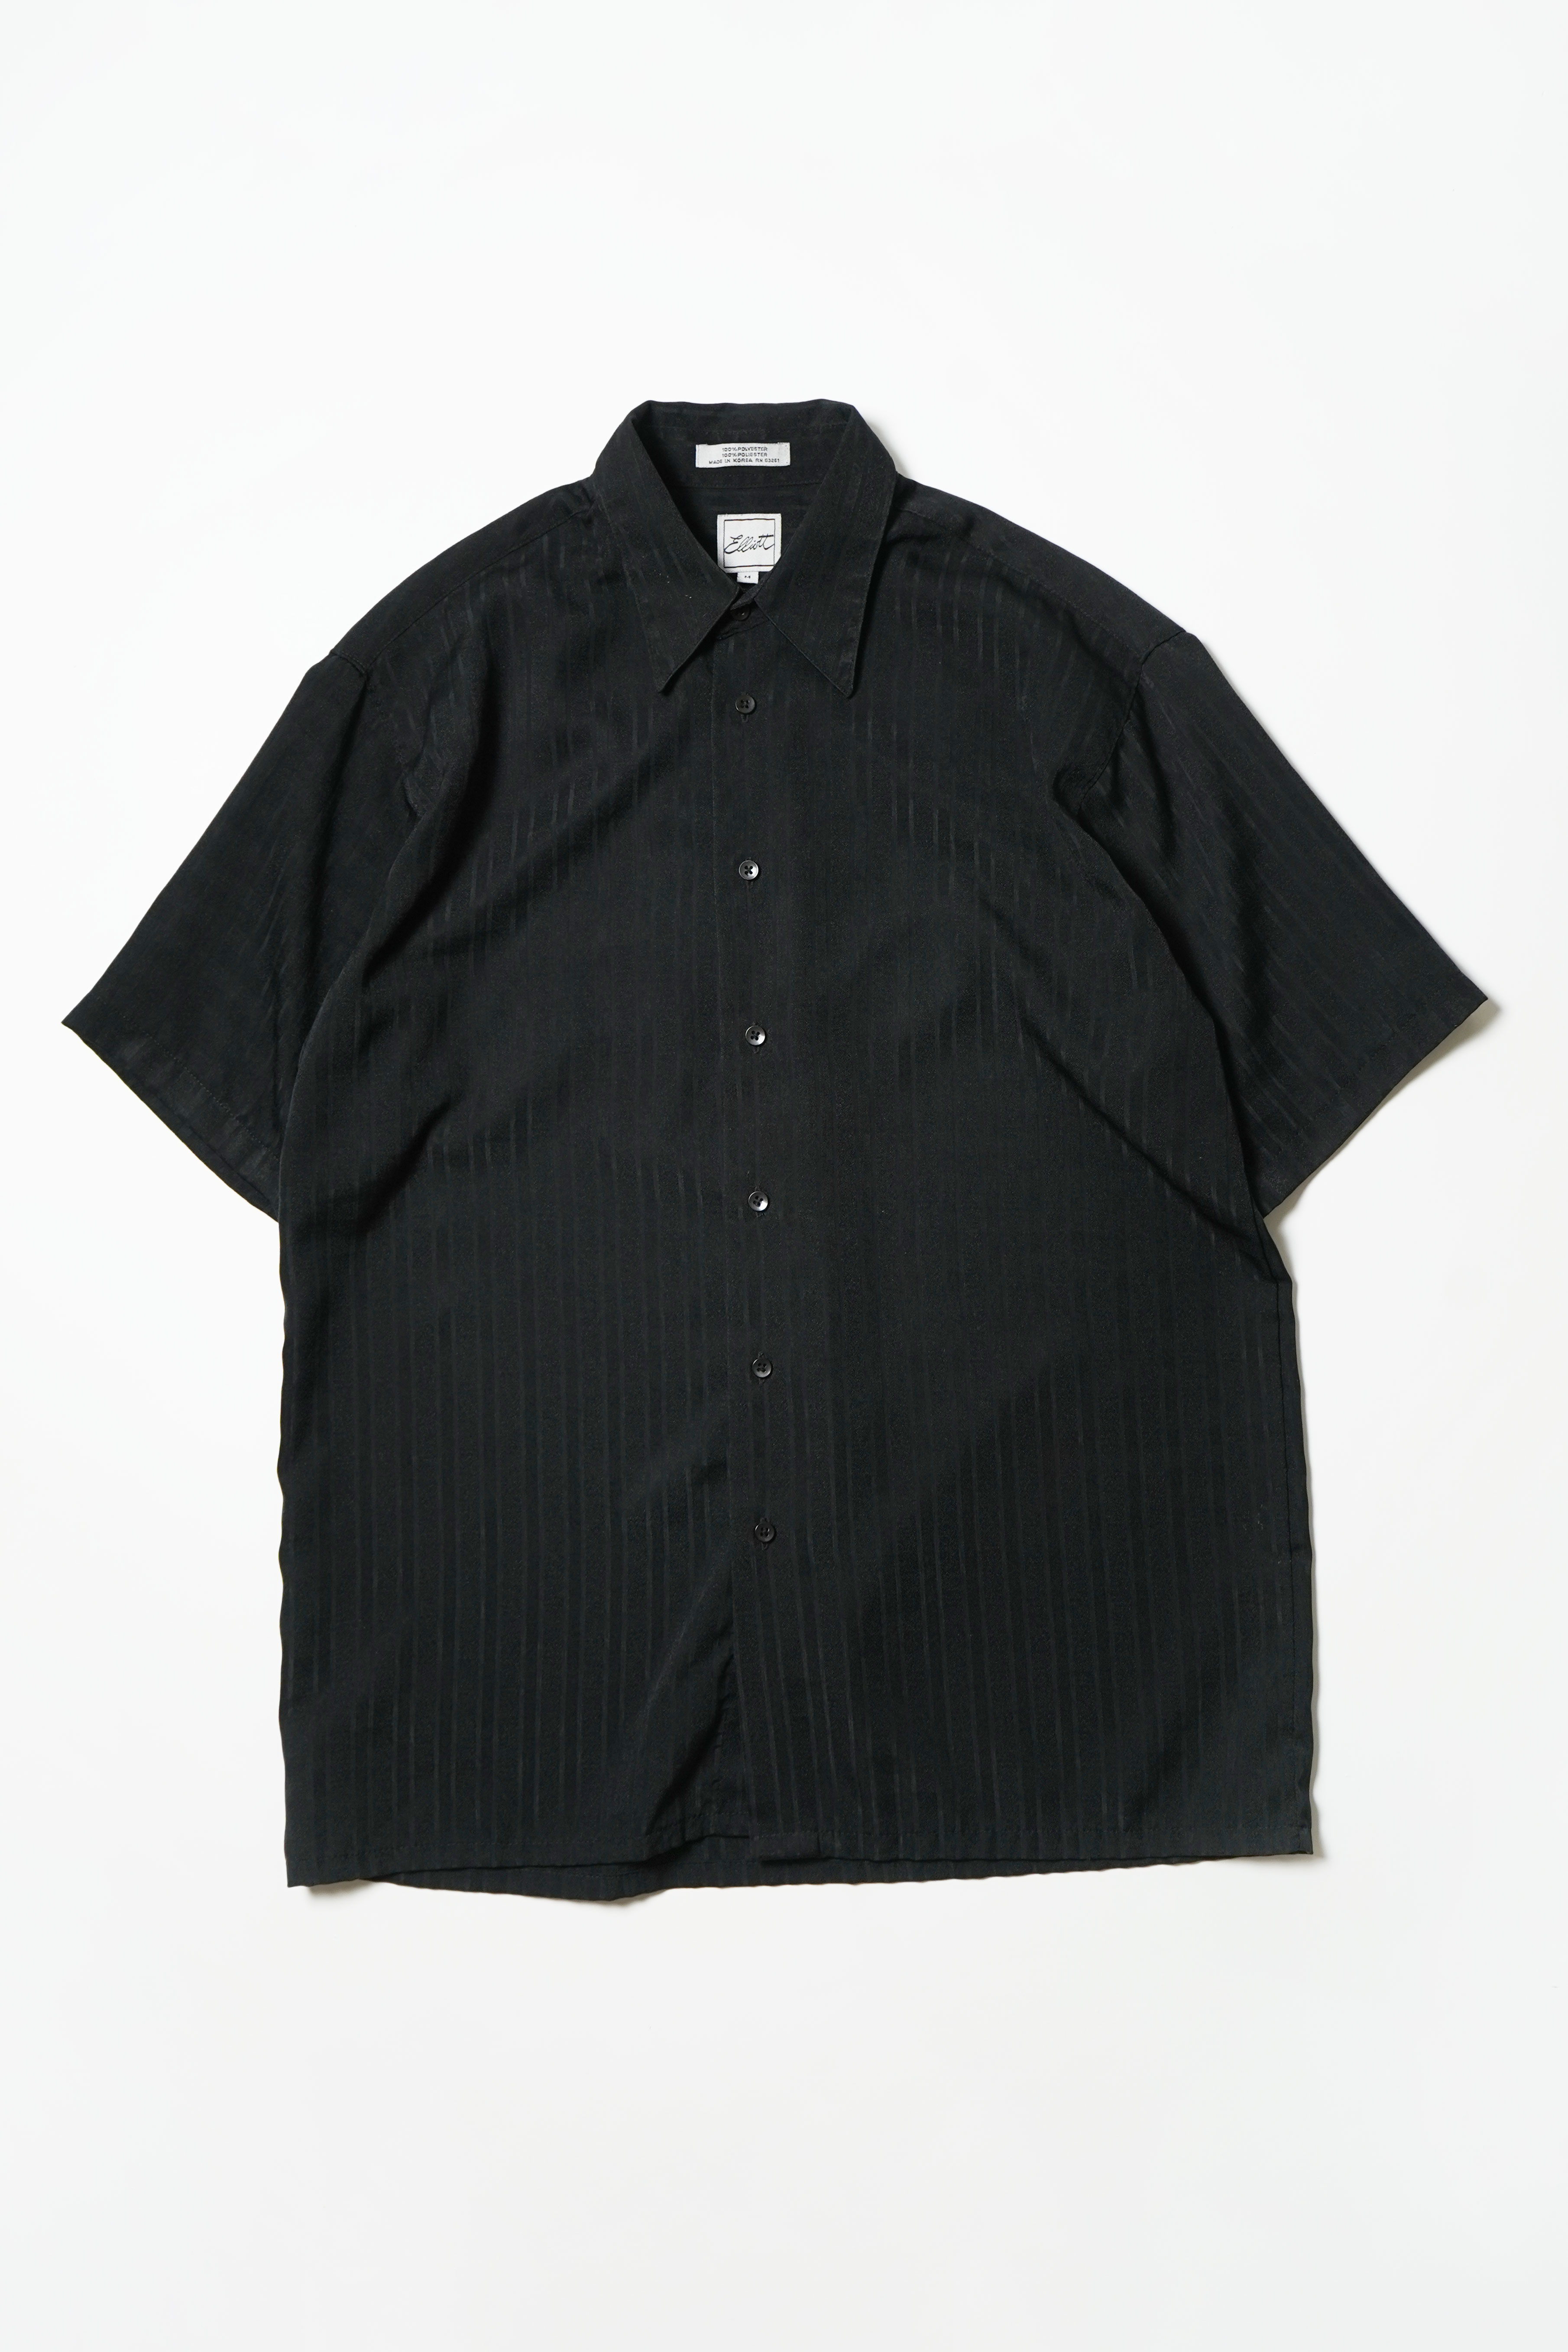 STRIPE BLACK DESIGN S/S SHIRT